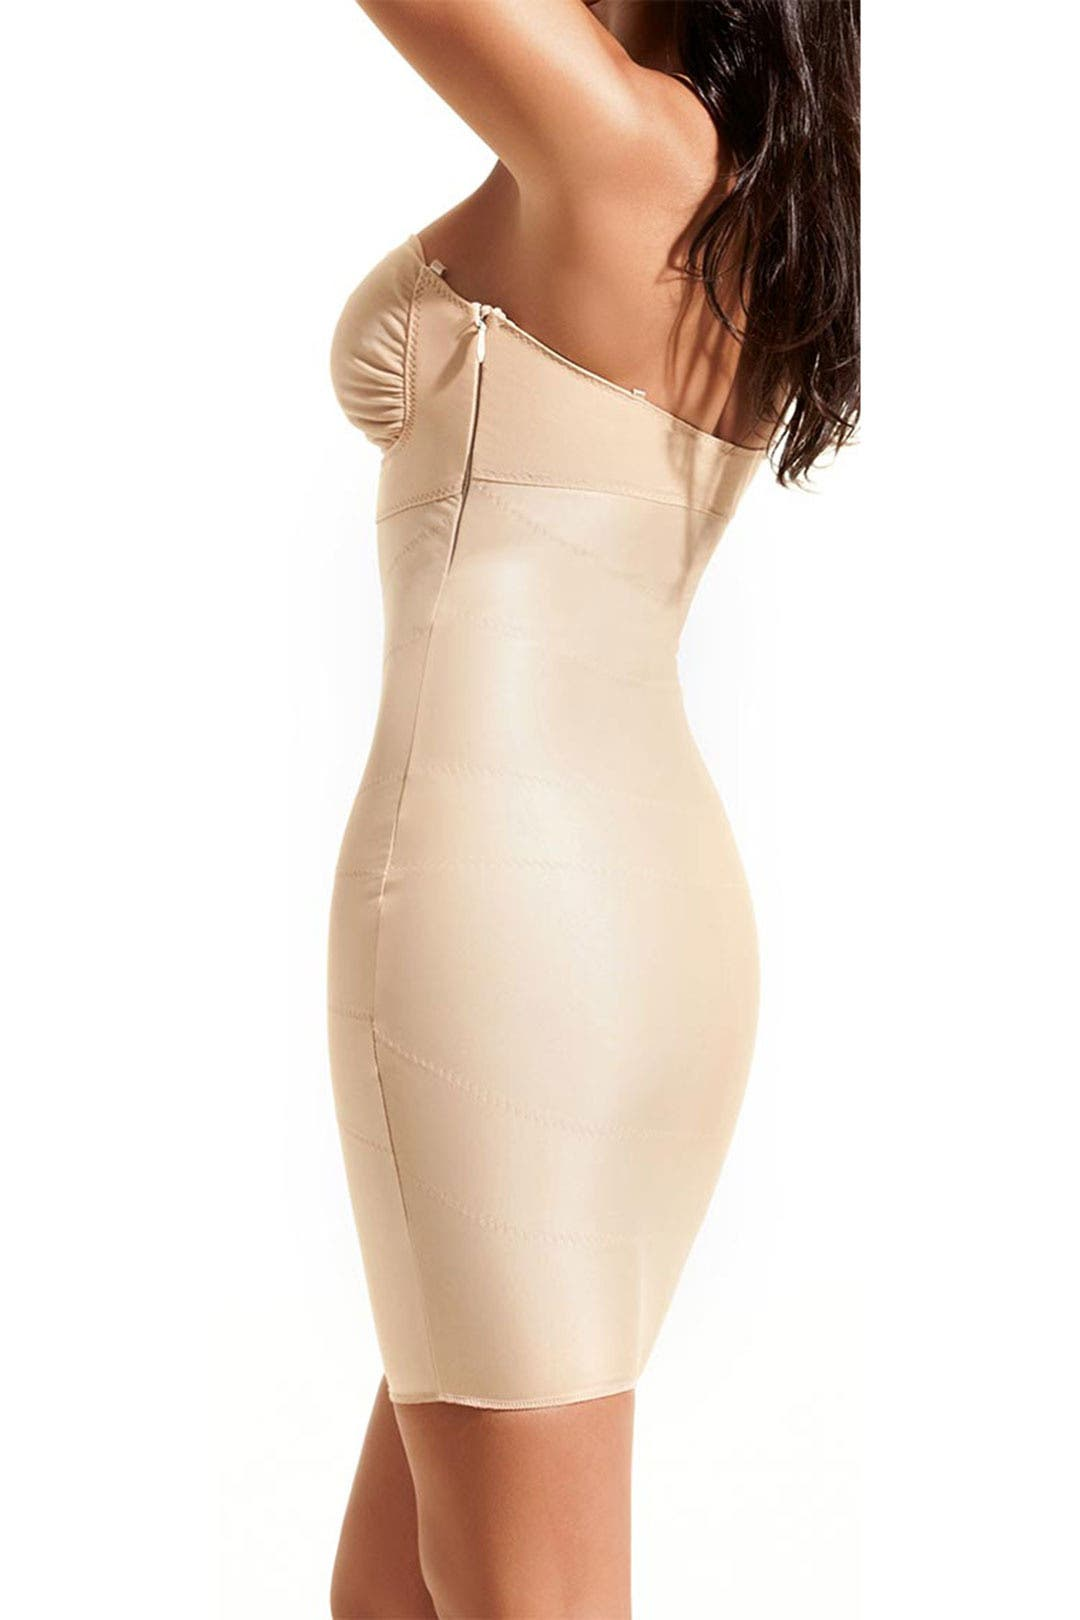 Nude Grace Strapless Full Slip by D Mondaine